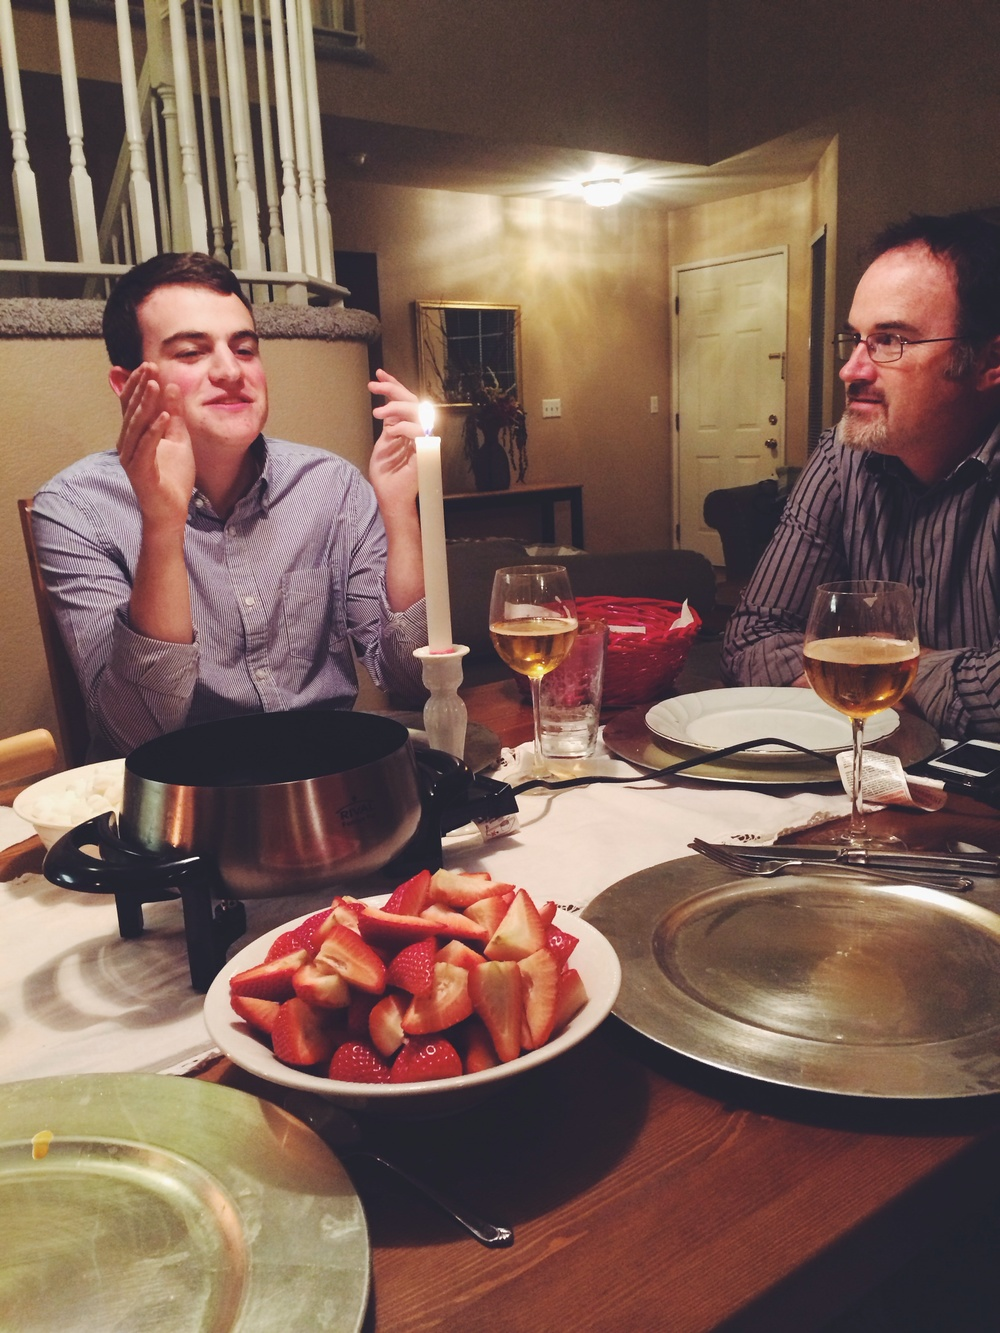 brother and dad are the same person. twin personalities.